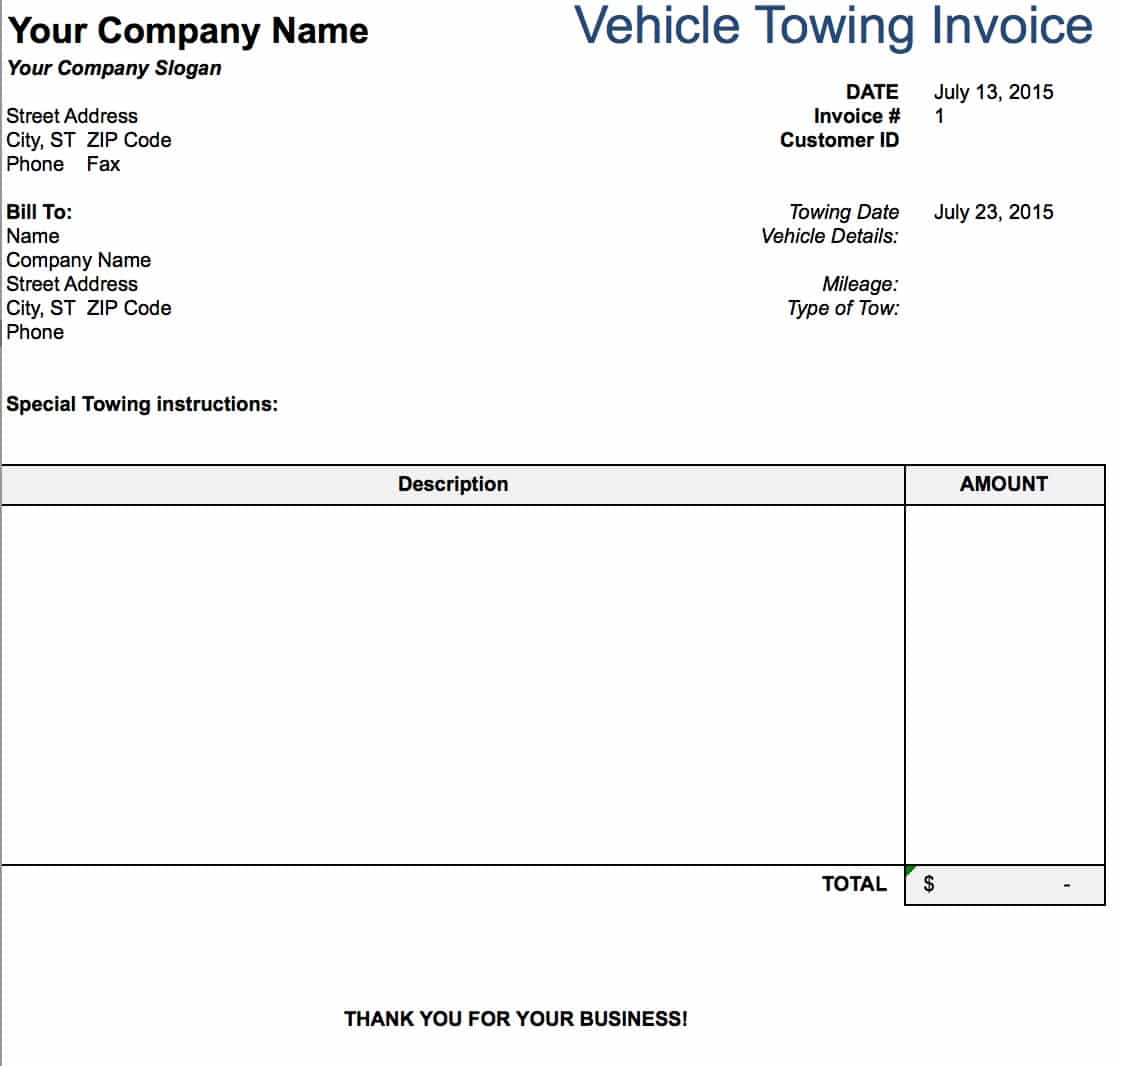 Free Tow Service Invoice Template Excel PDF Word Doc - Free invoice images for service business